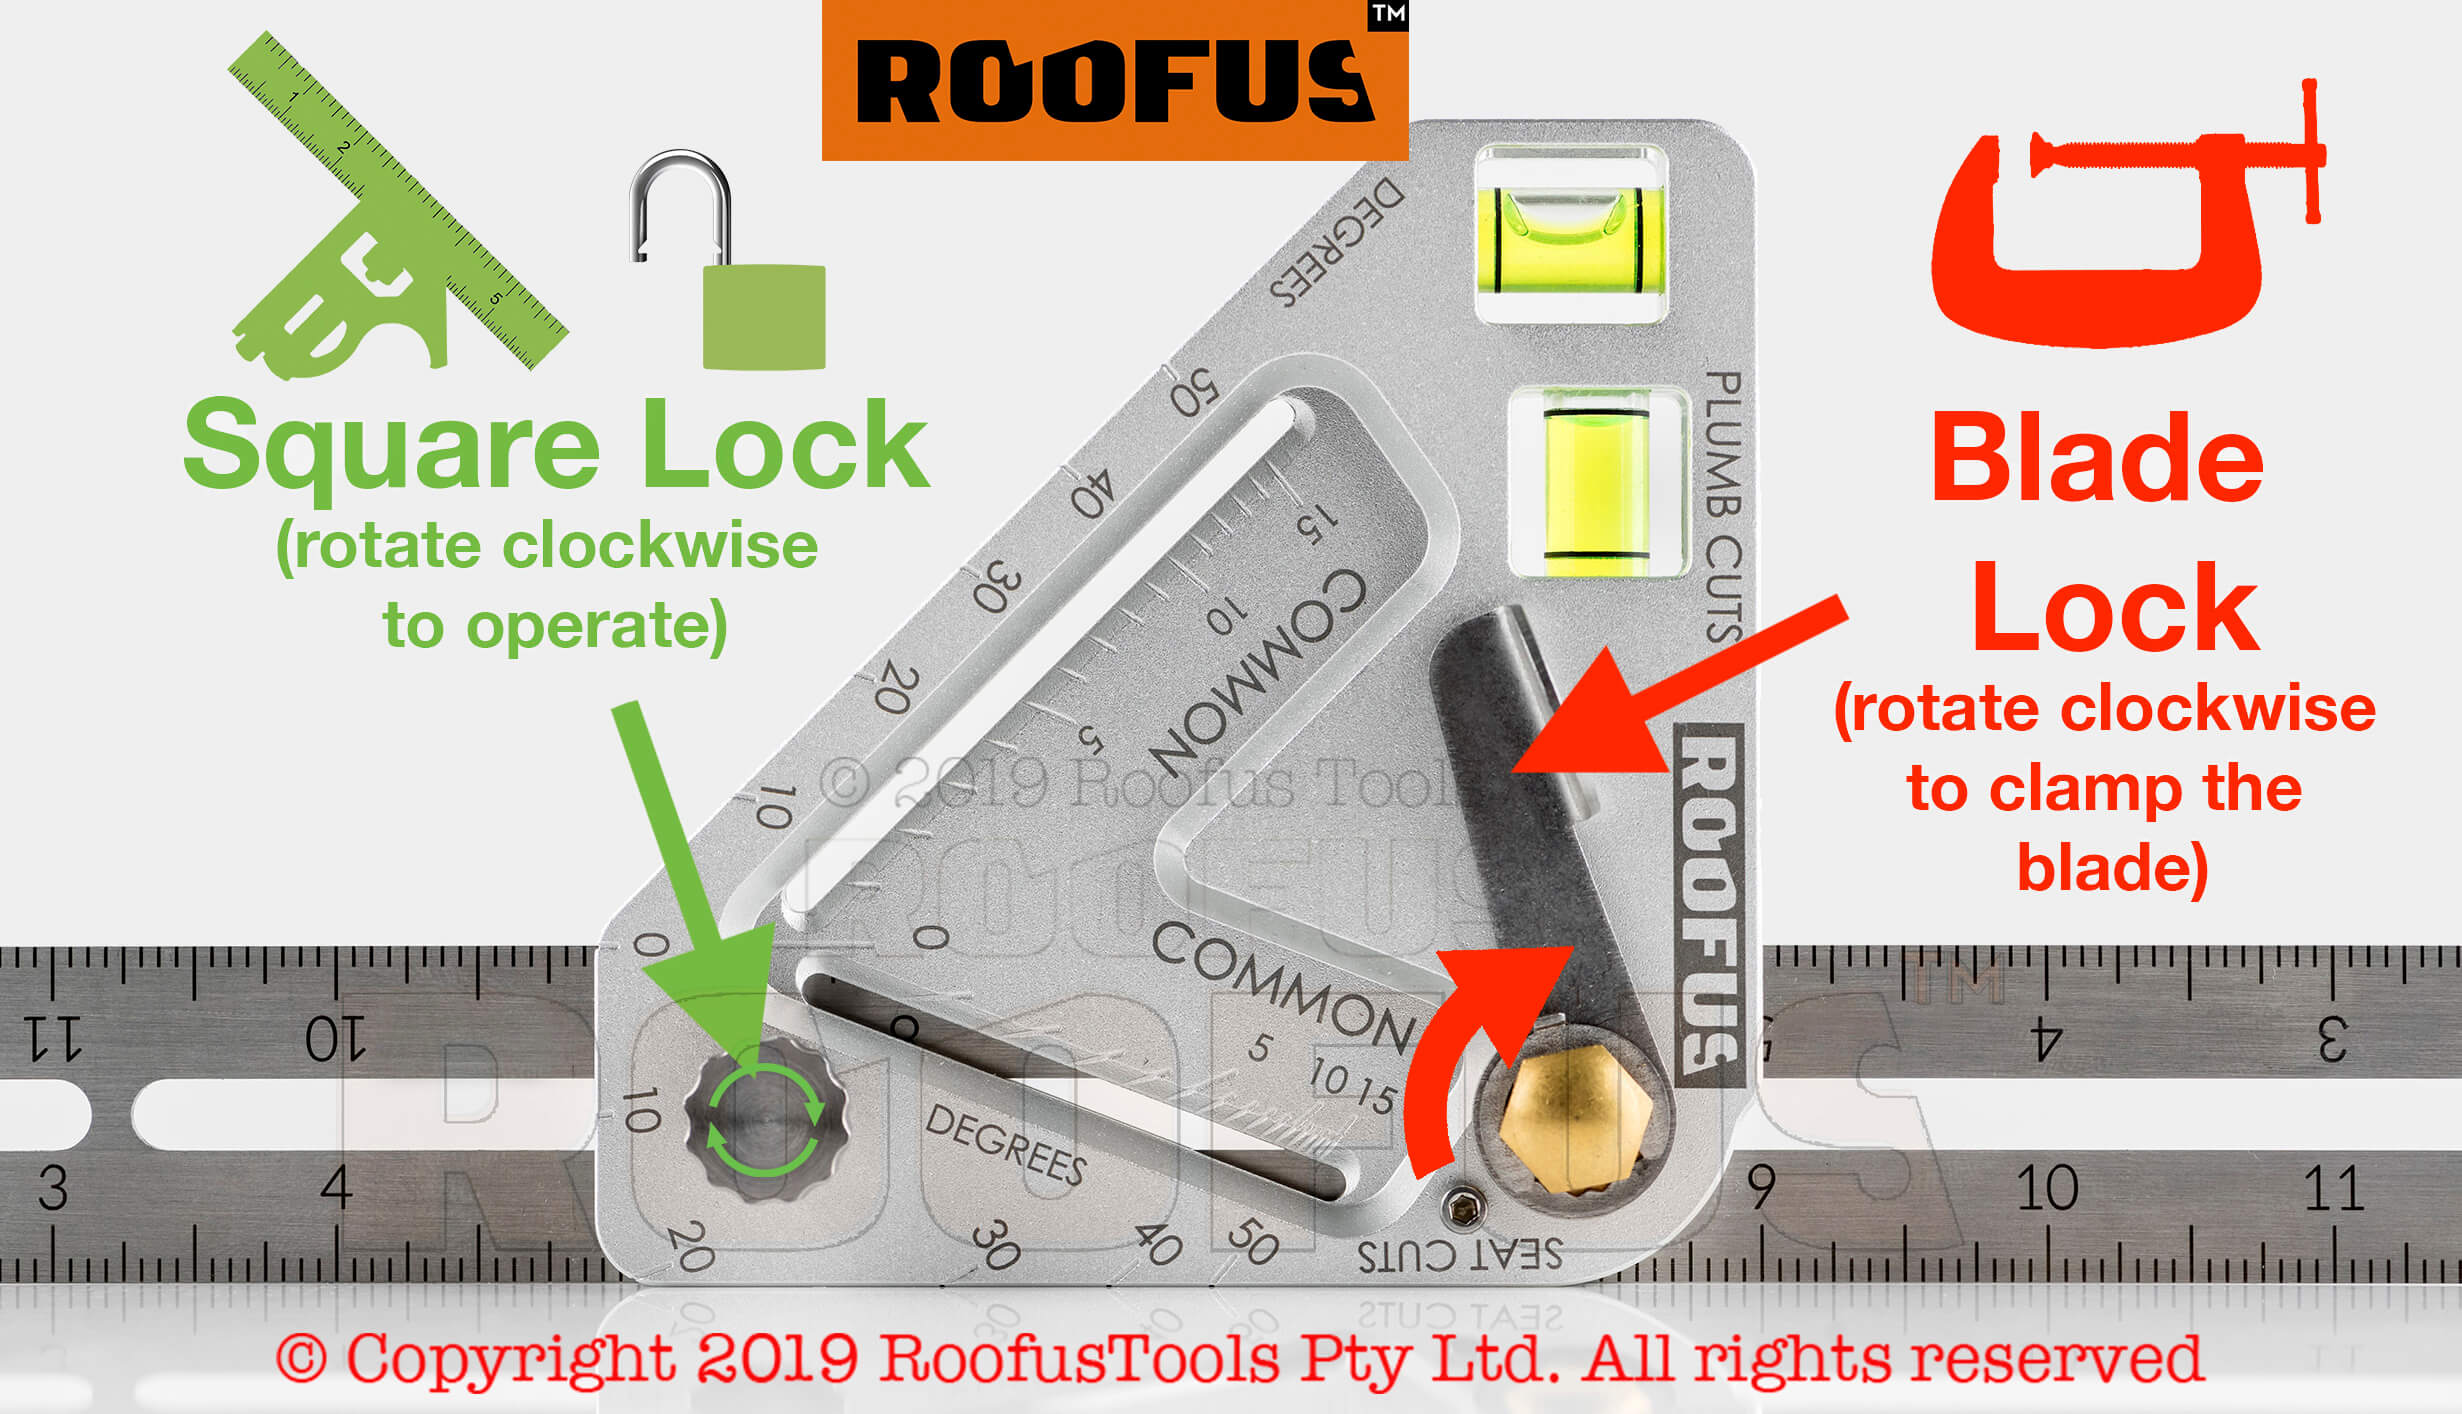 How the two locks on Roofus work and what they do